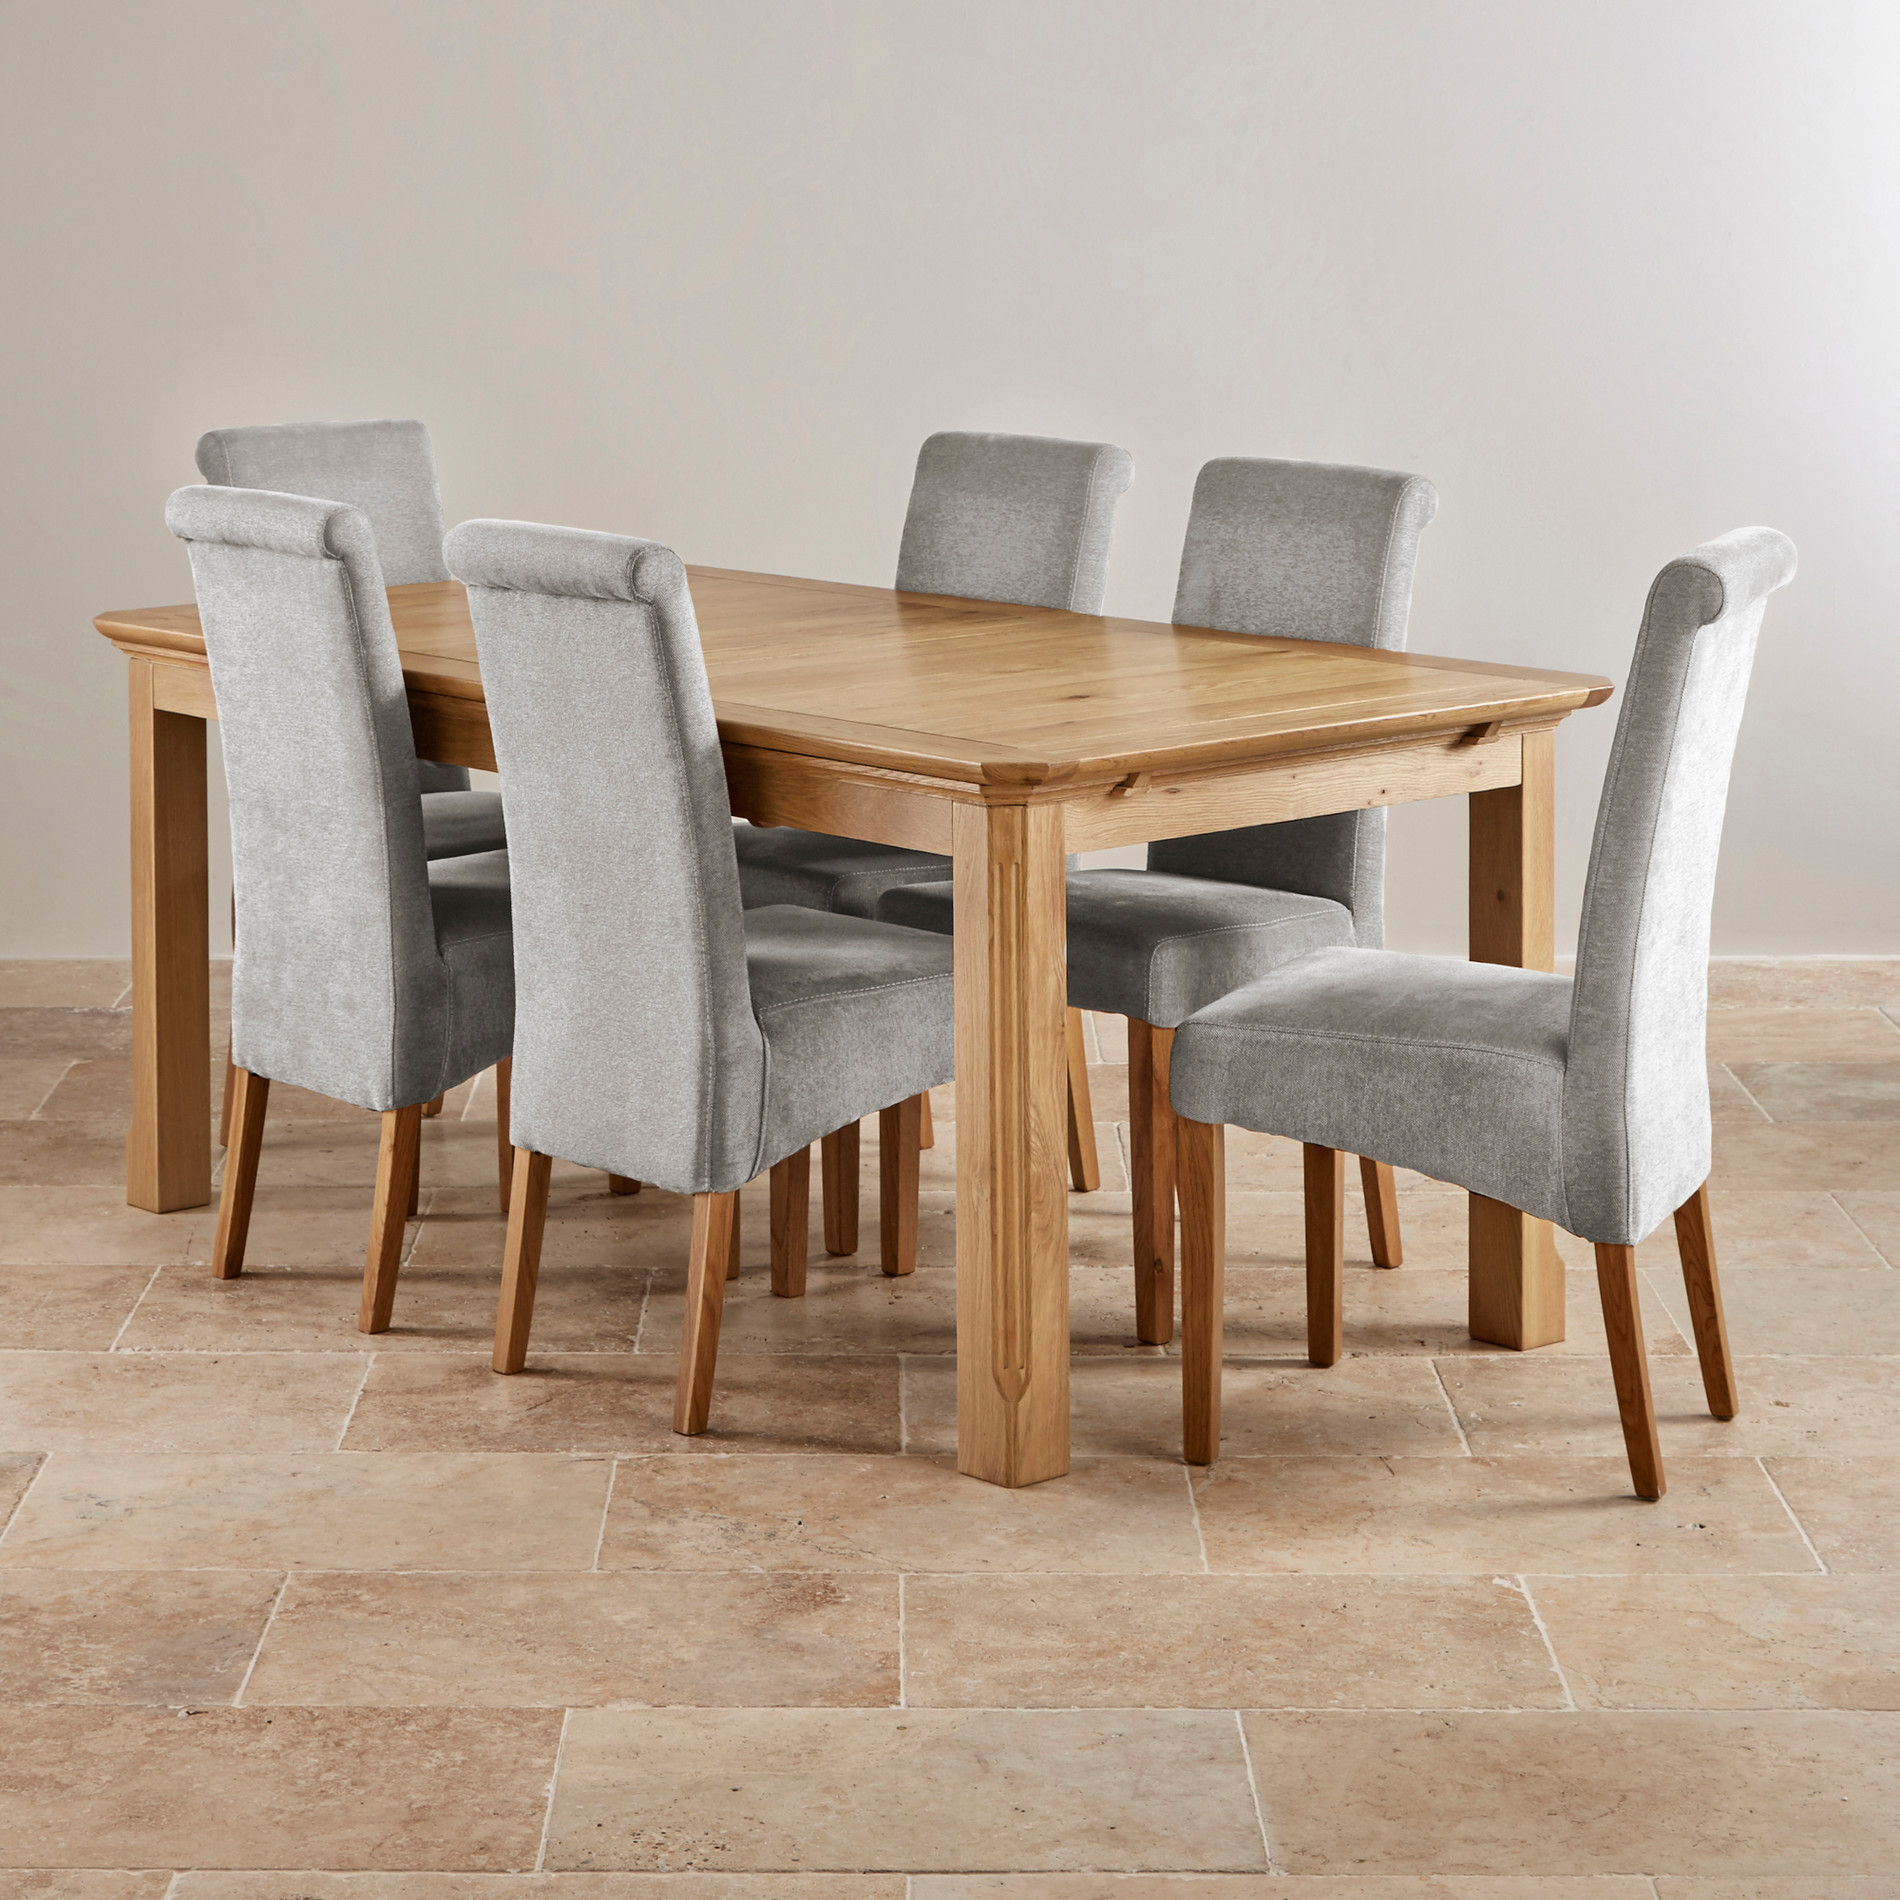 Dining Chair Sets Of 6: Edinburgh Extending Dining Set In Oak: Dining Table + 6 Chairs